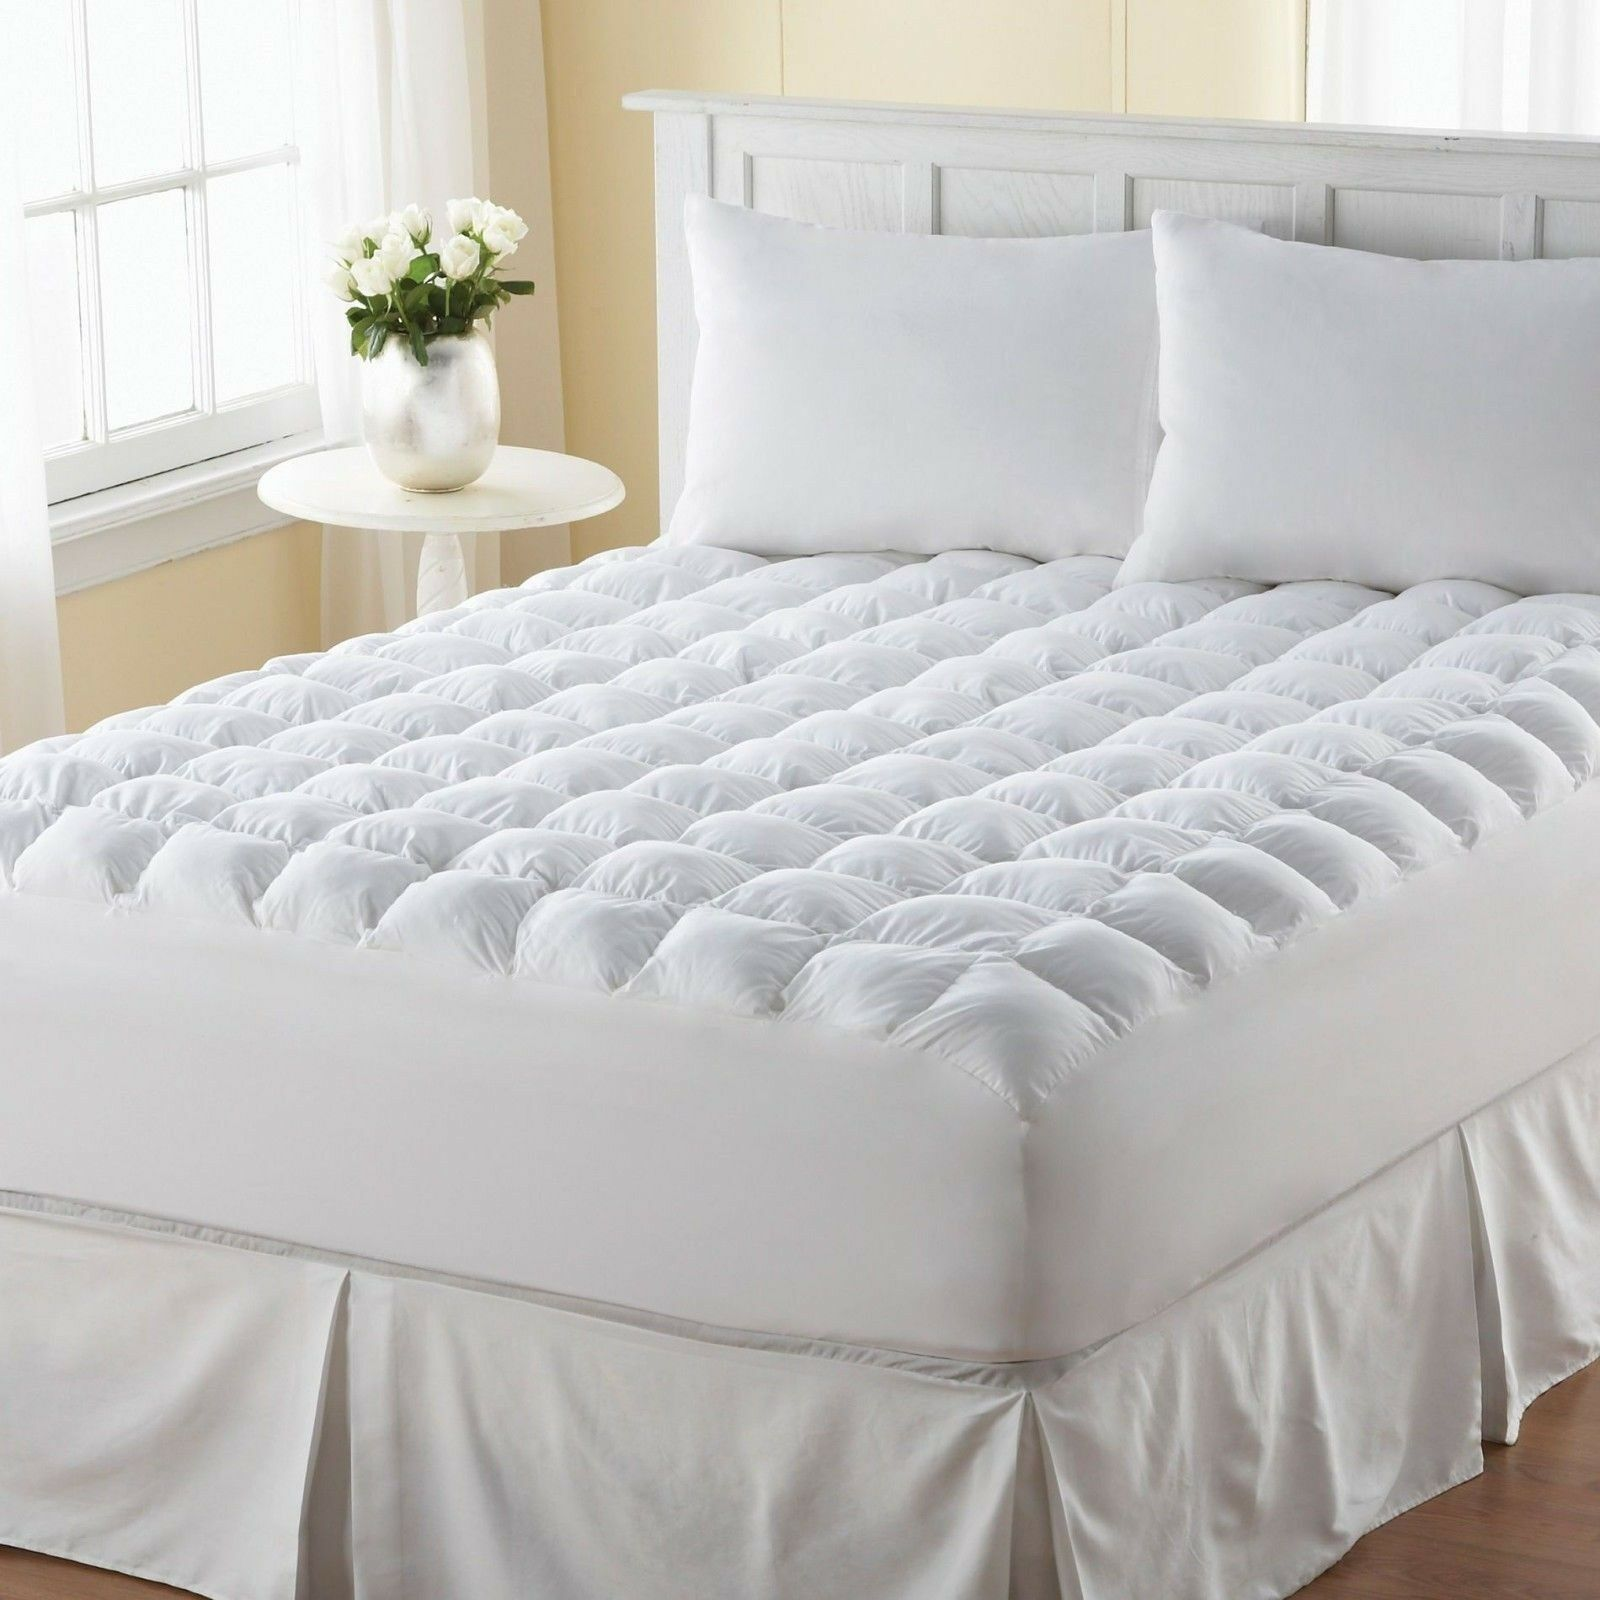 double img next htm top pillowtop mattress select pillow topper c delivery sticker mattresses day miracoil